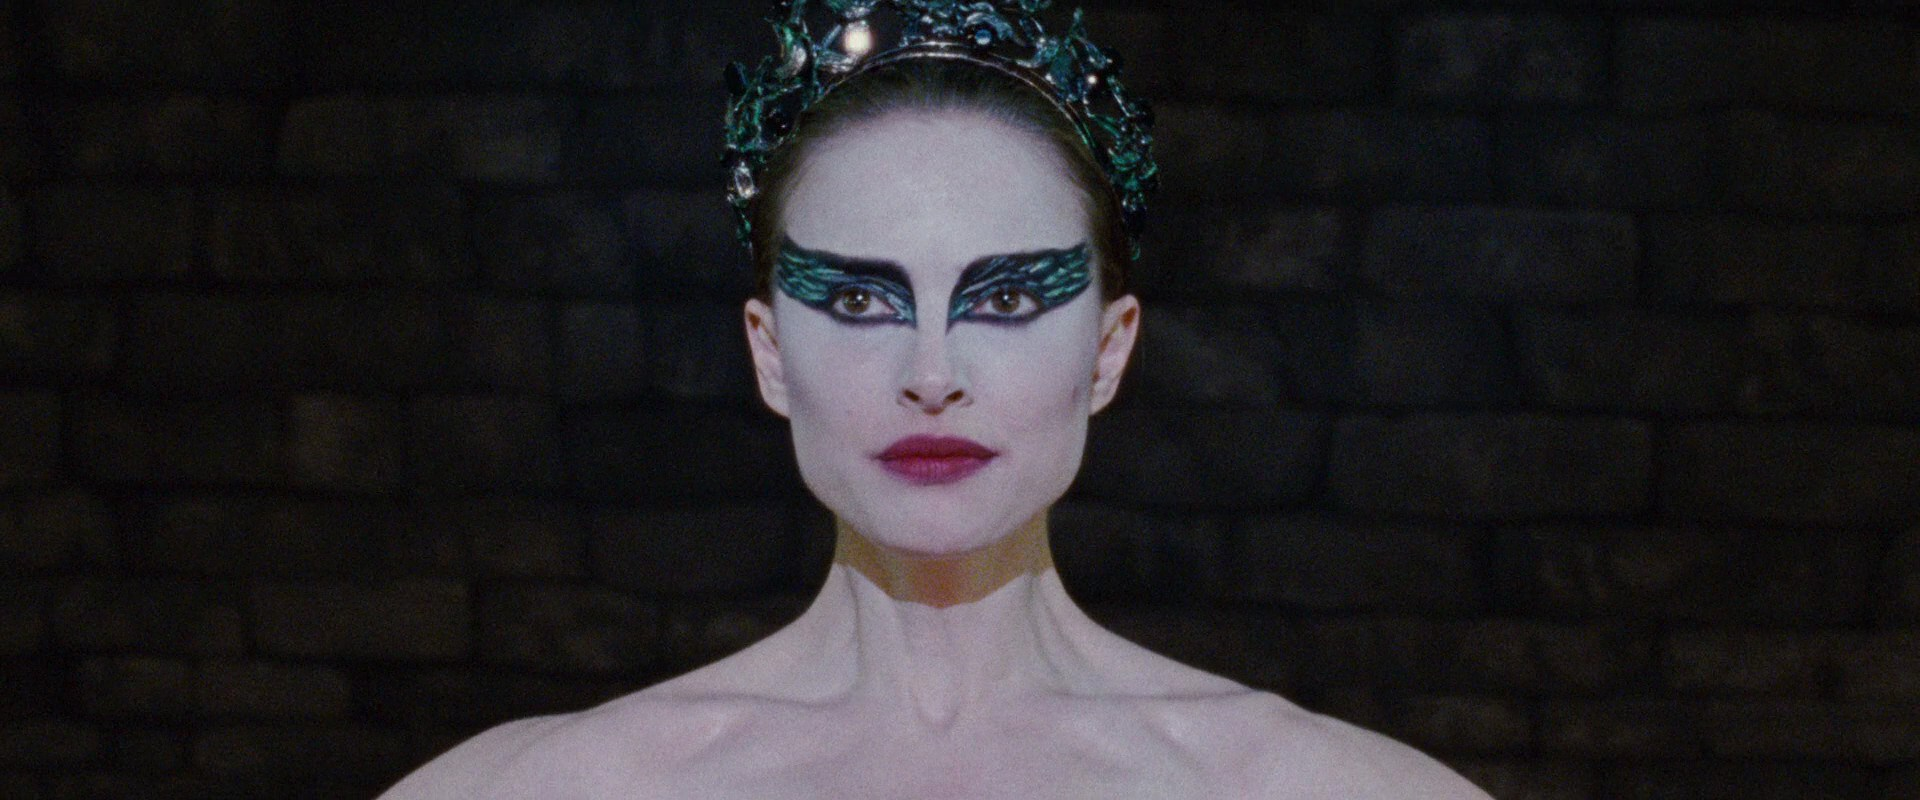 The film does not slow down from this point  Nina goes to perform the black  swan at any cost  including committing violent assault and murdering Lily. I just want to be perfect     Black Swan  2010    FictionMachine